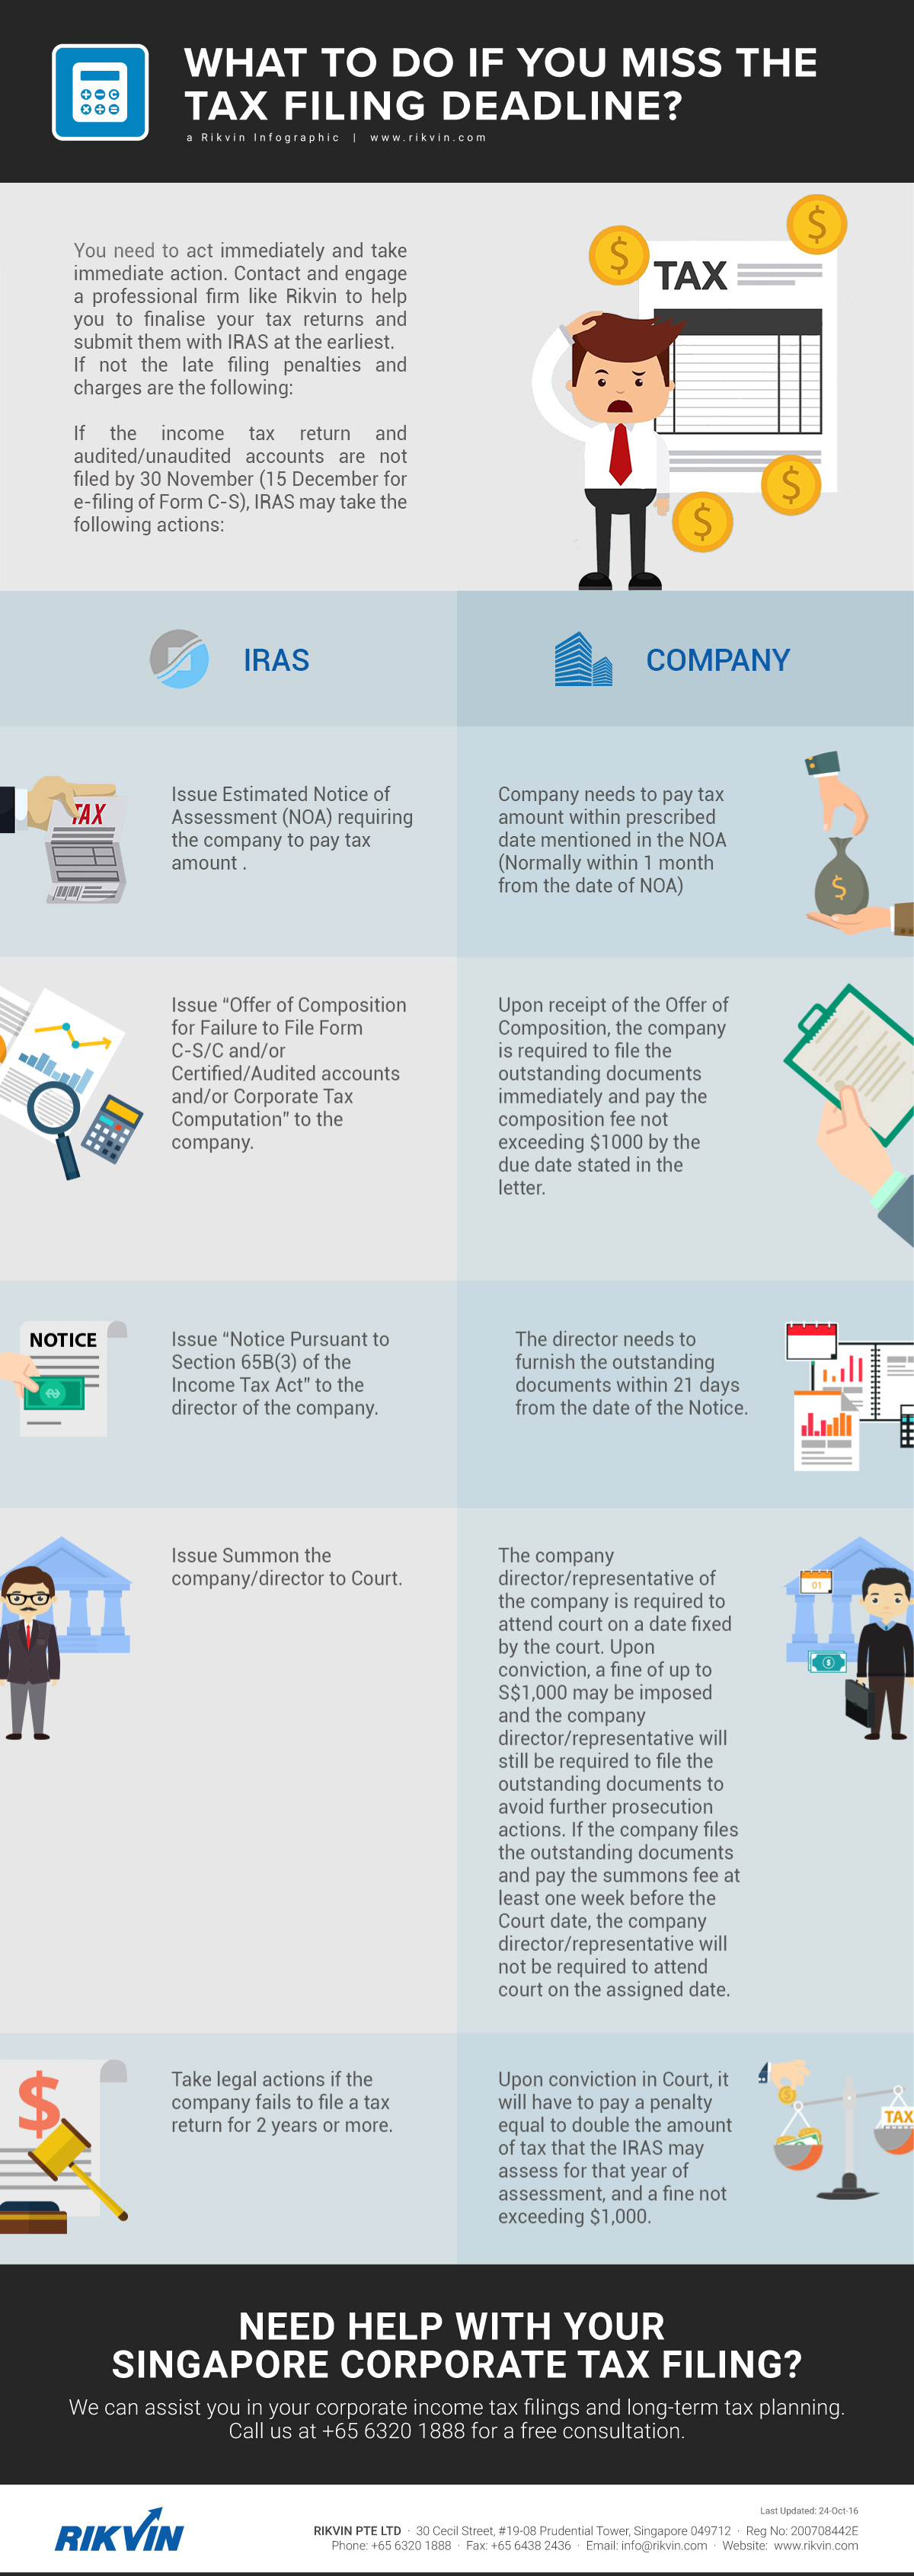 what-to-do-if-you-miss-the-tax-filing-deadline_rikvin-infographic What to Do If You Miss the Tax Filing Deadline